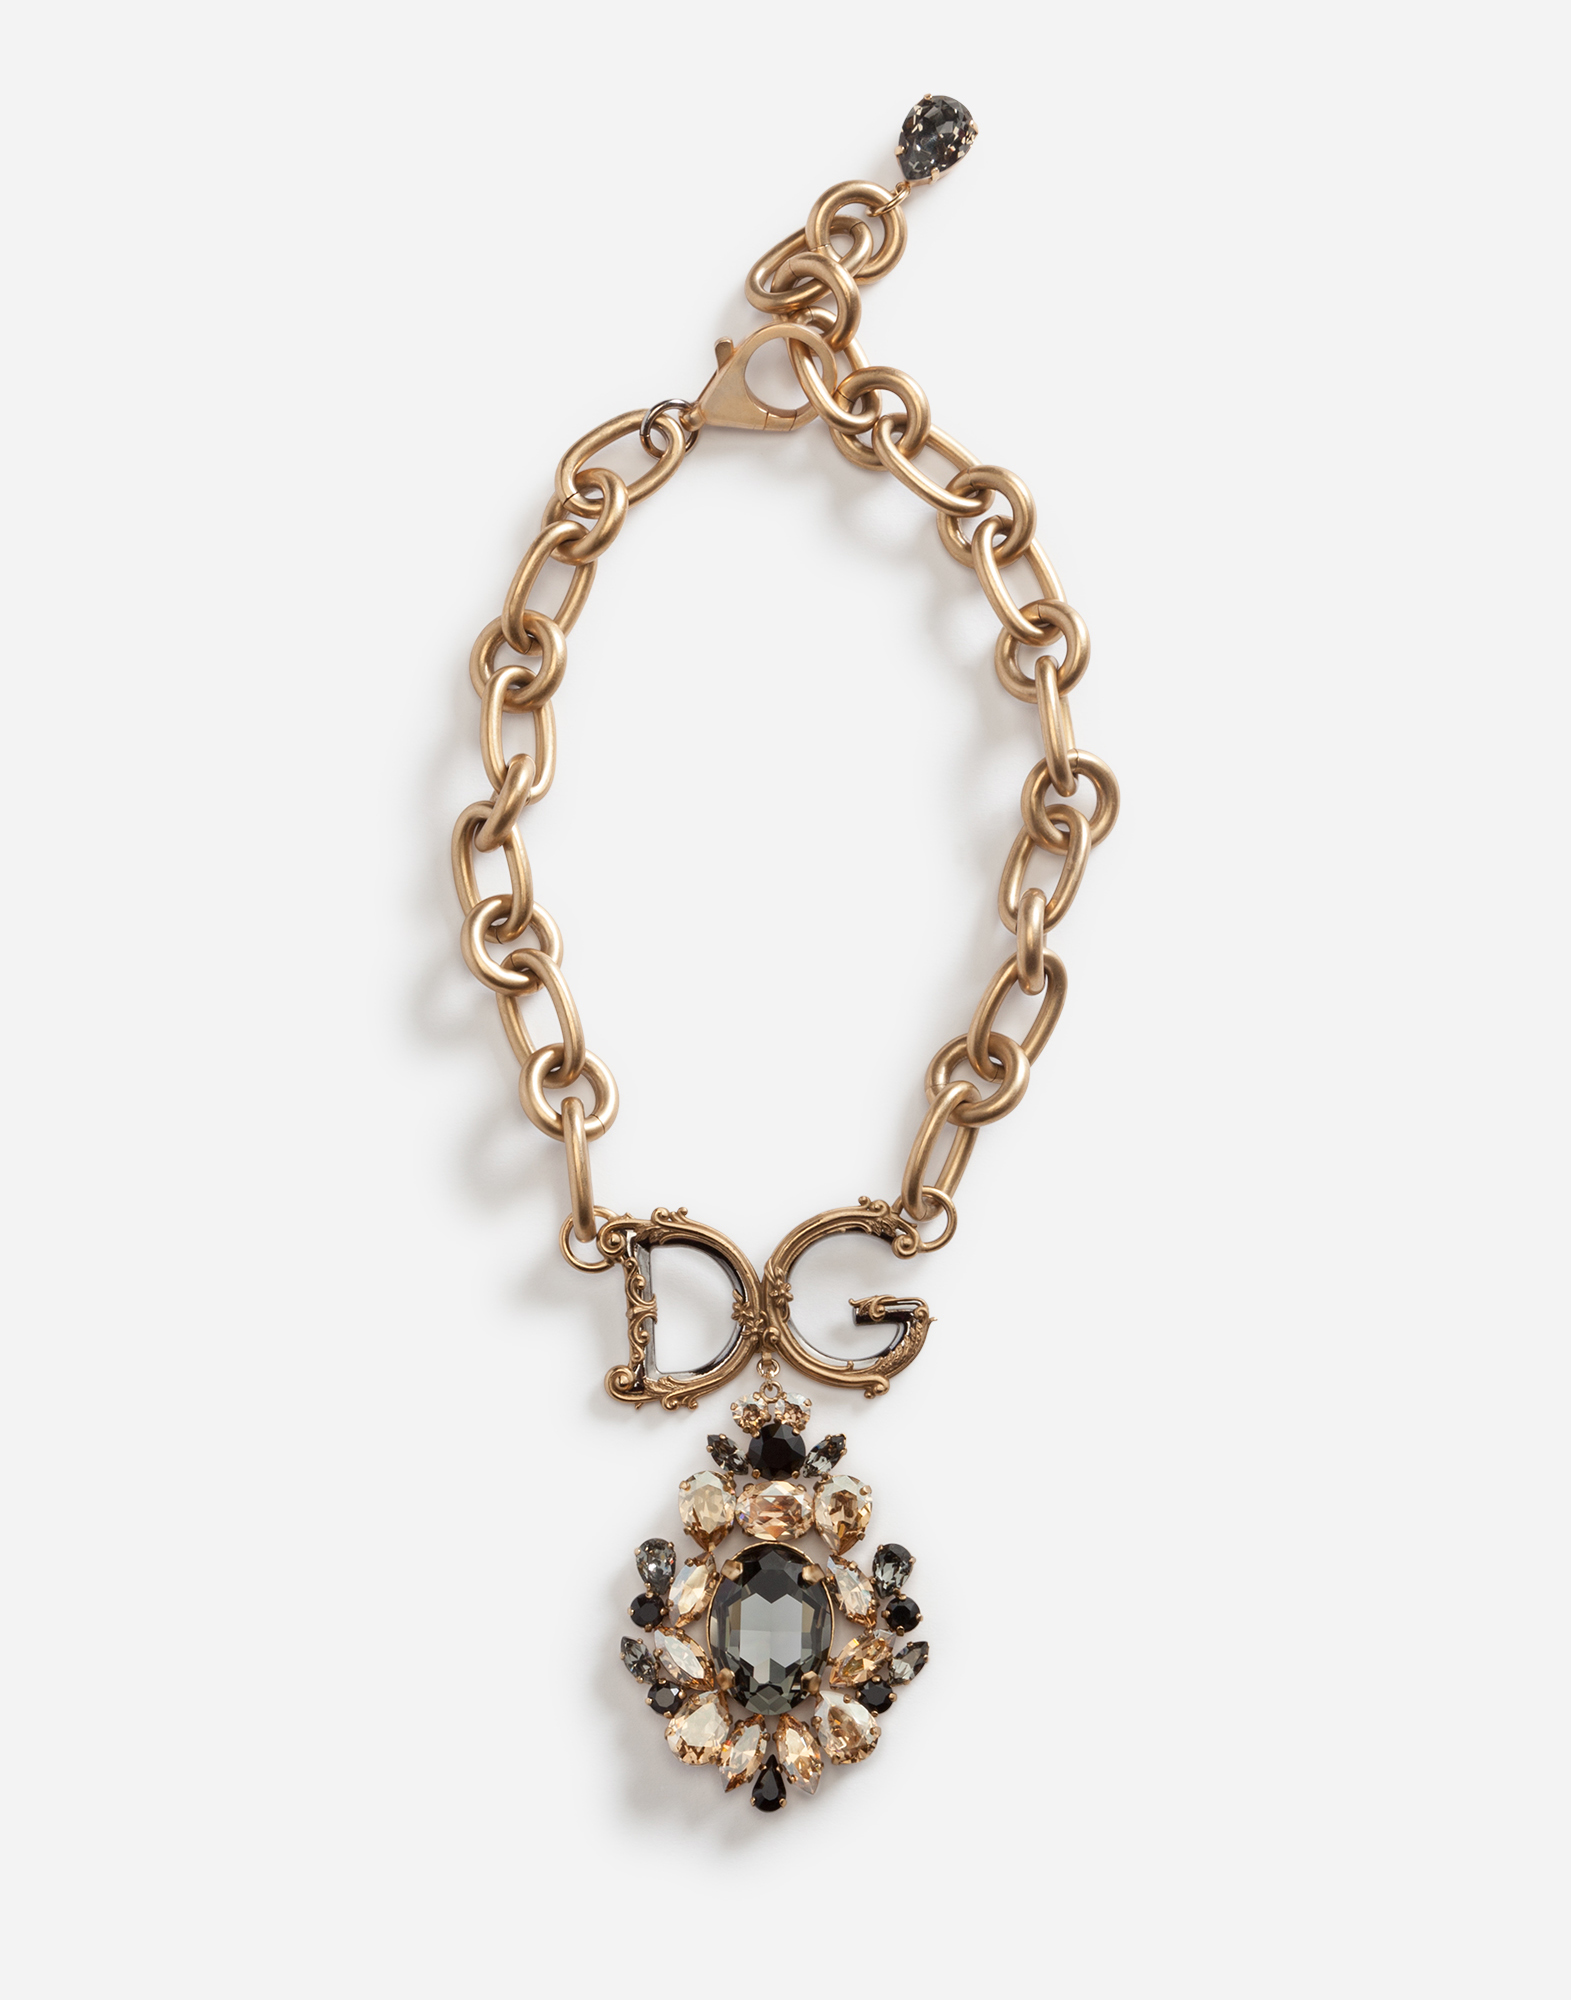 Dolce & Gabbana NECKLACE WITH DECORATIVE ELEMENTS